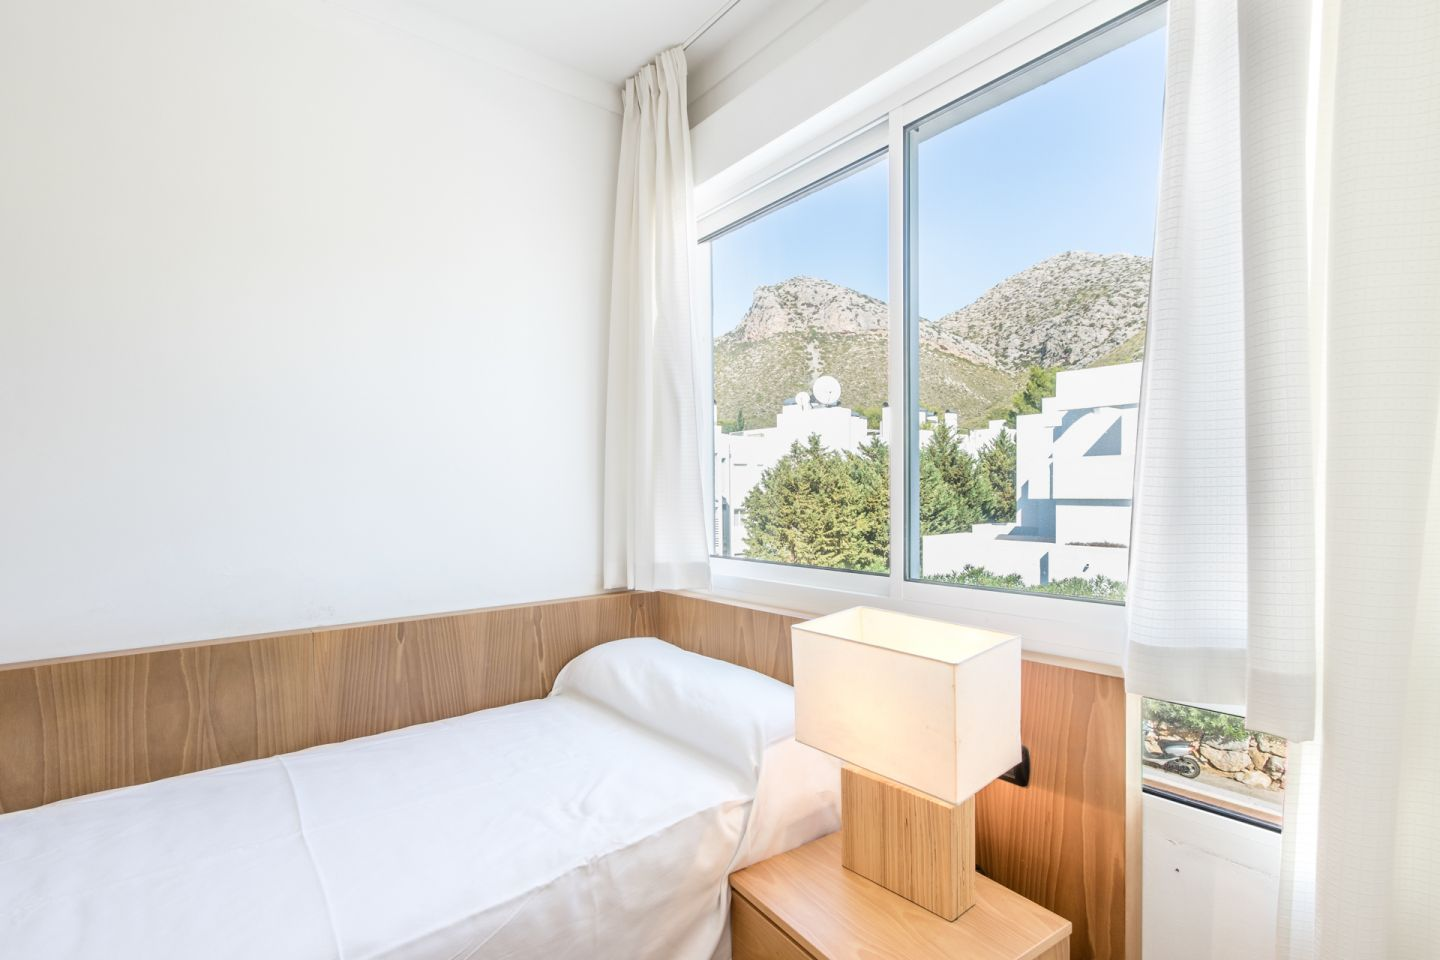 5 Bed Penthouse for sale in PUERTO POLLENSA 19